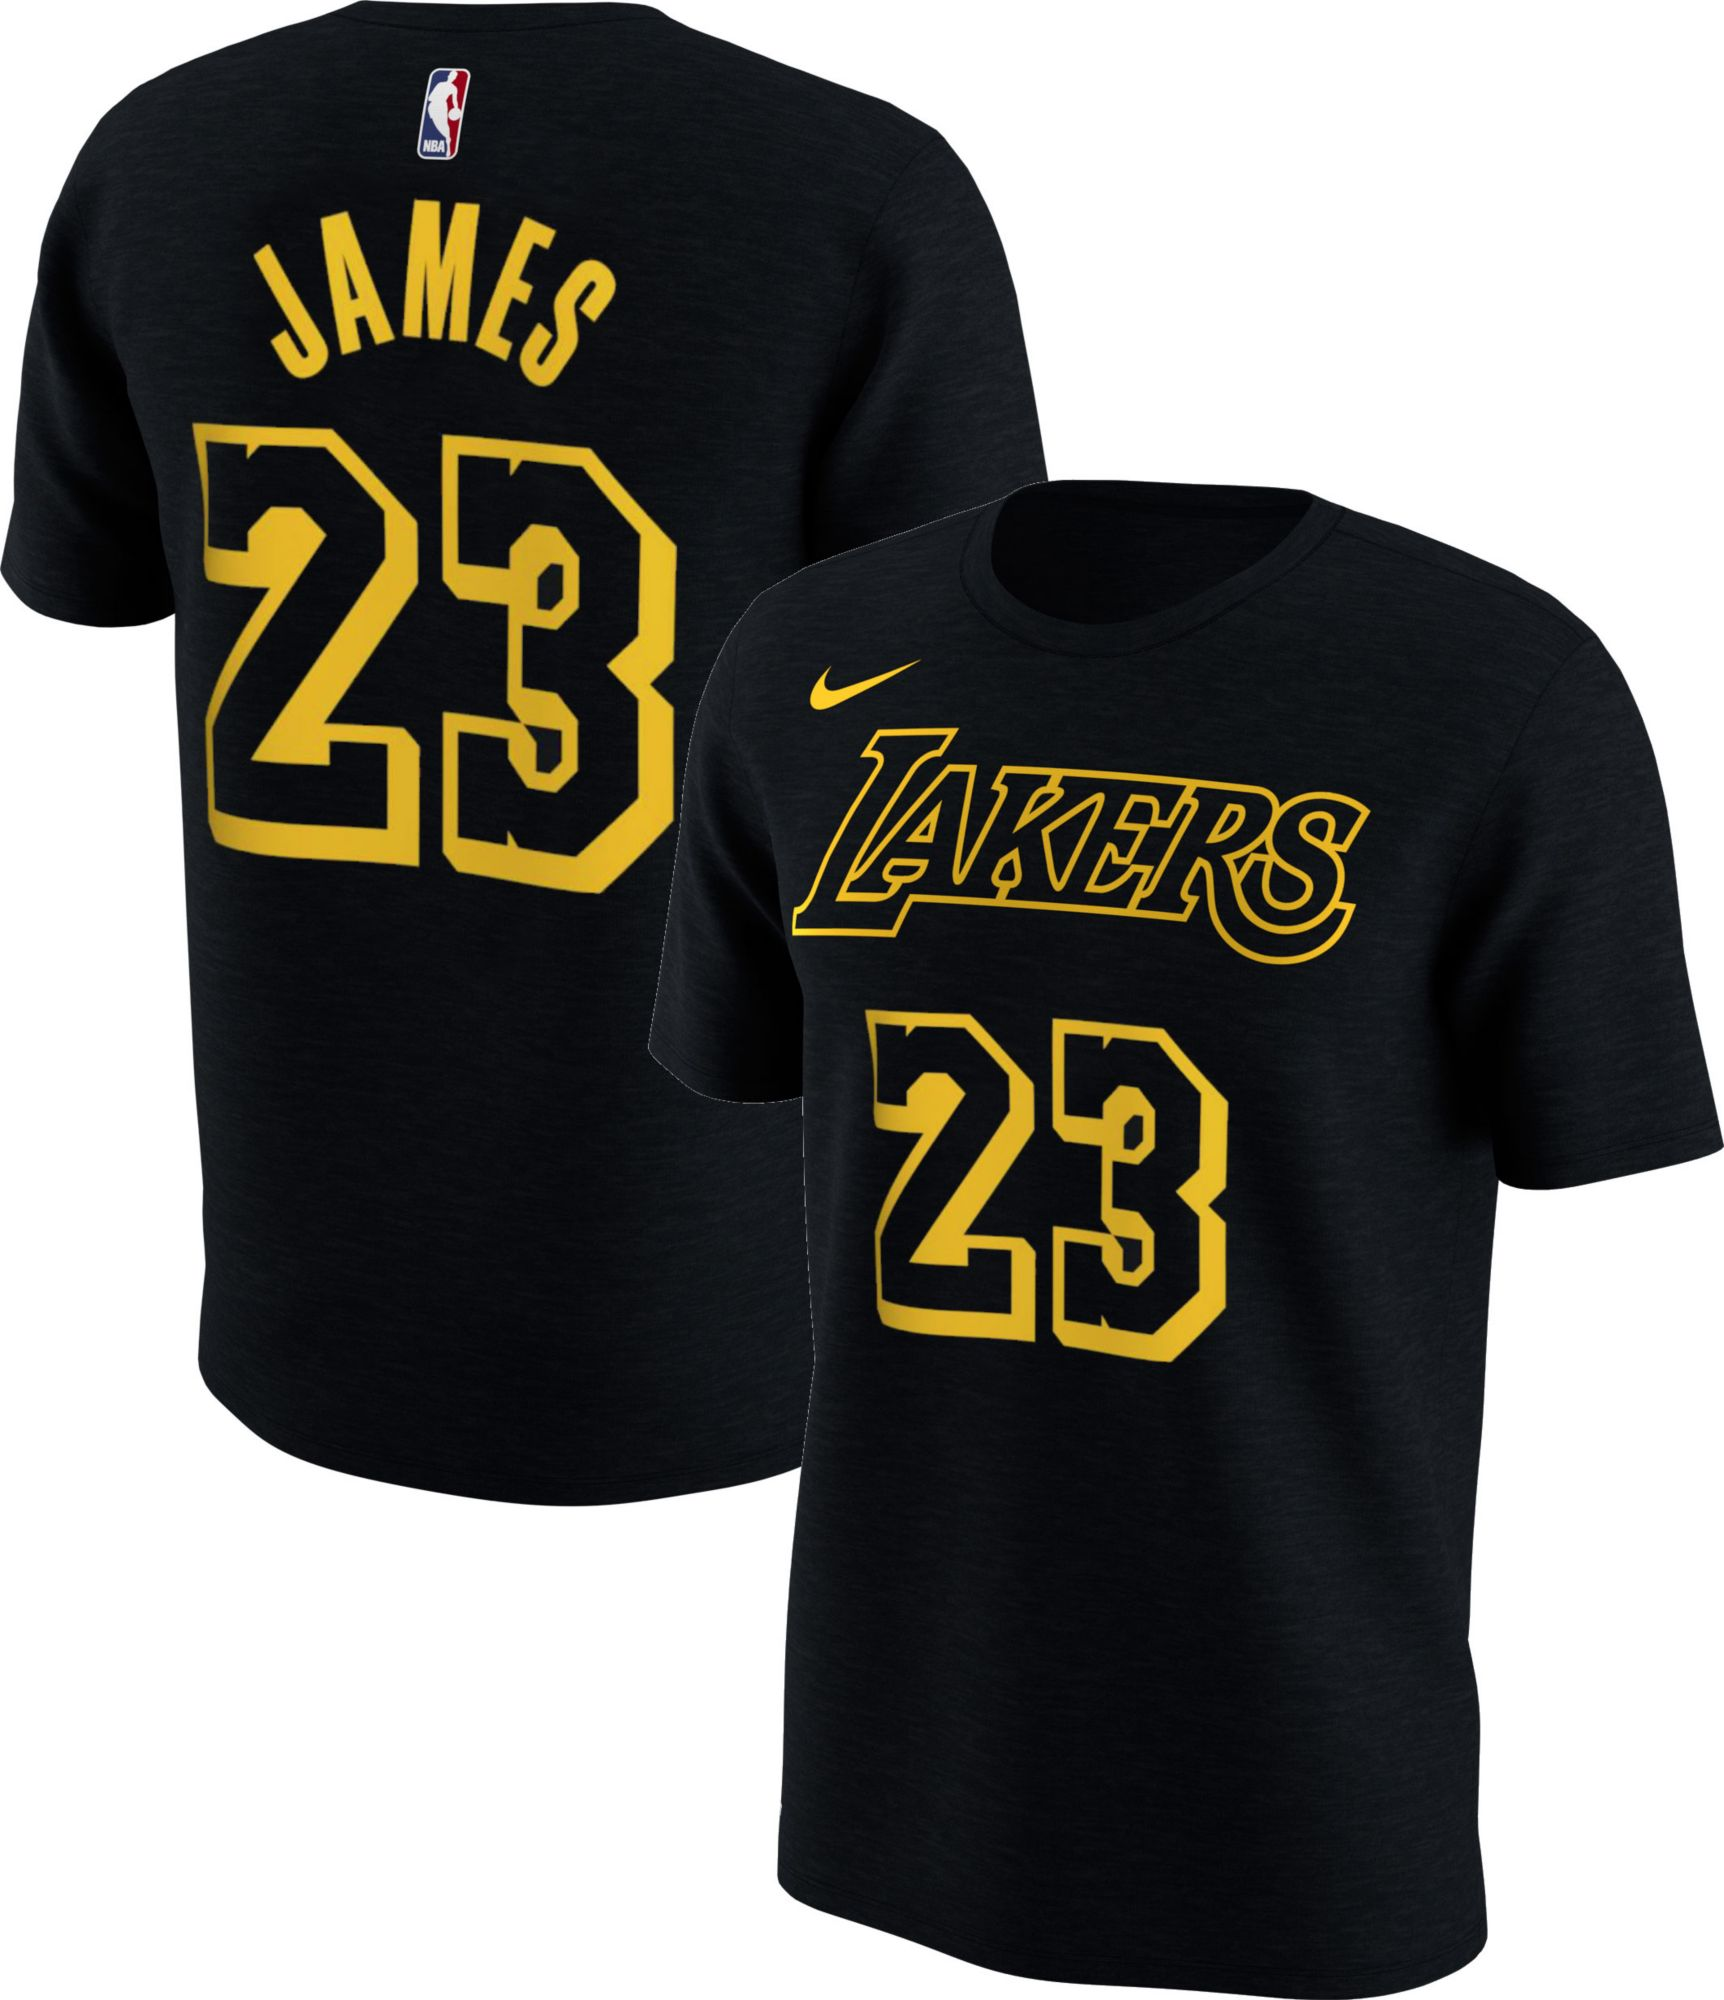 check out a507a 42881 Nike Youth Los Angeles Lakers LeBron James Dri-FIT City ...